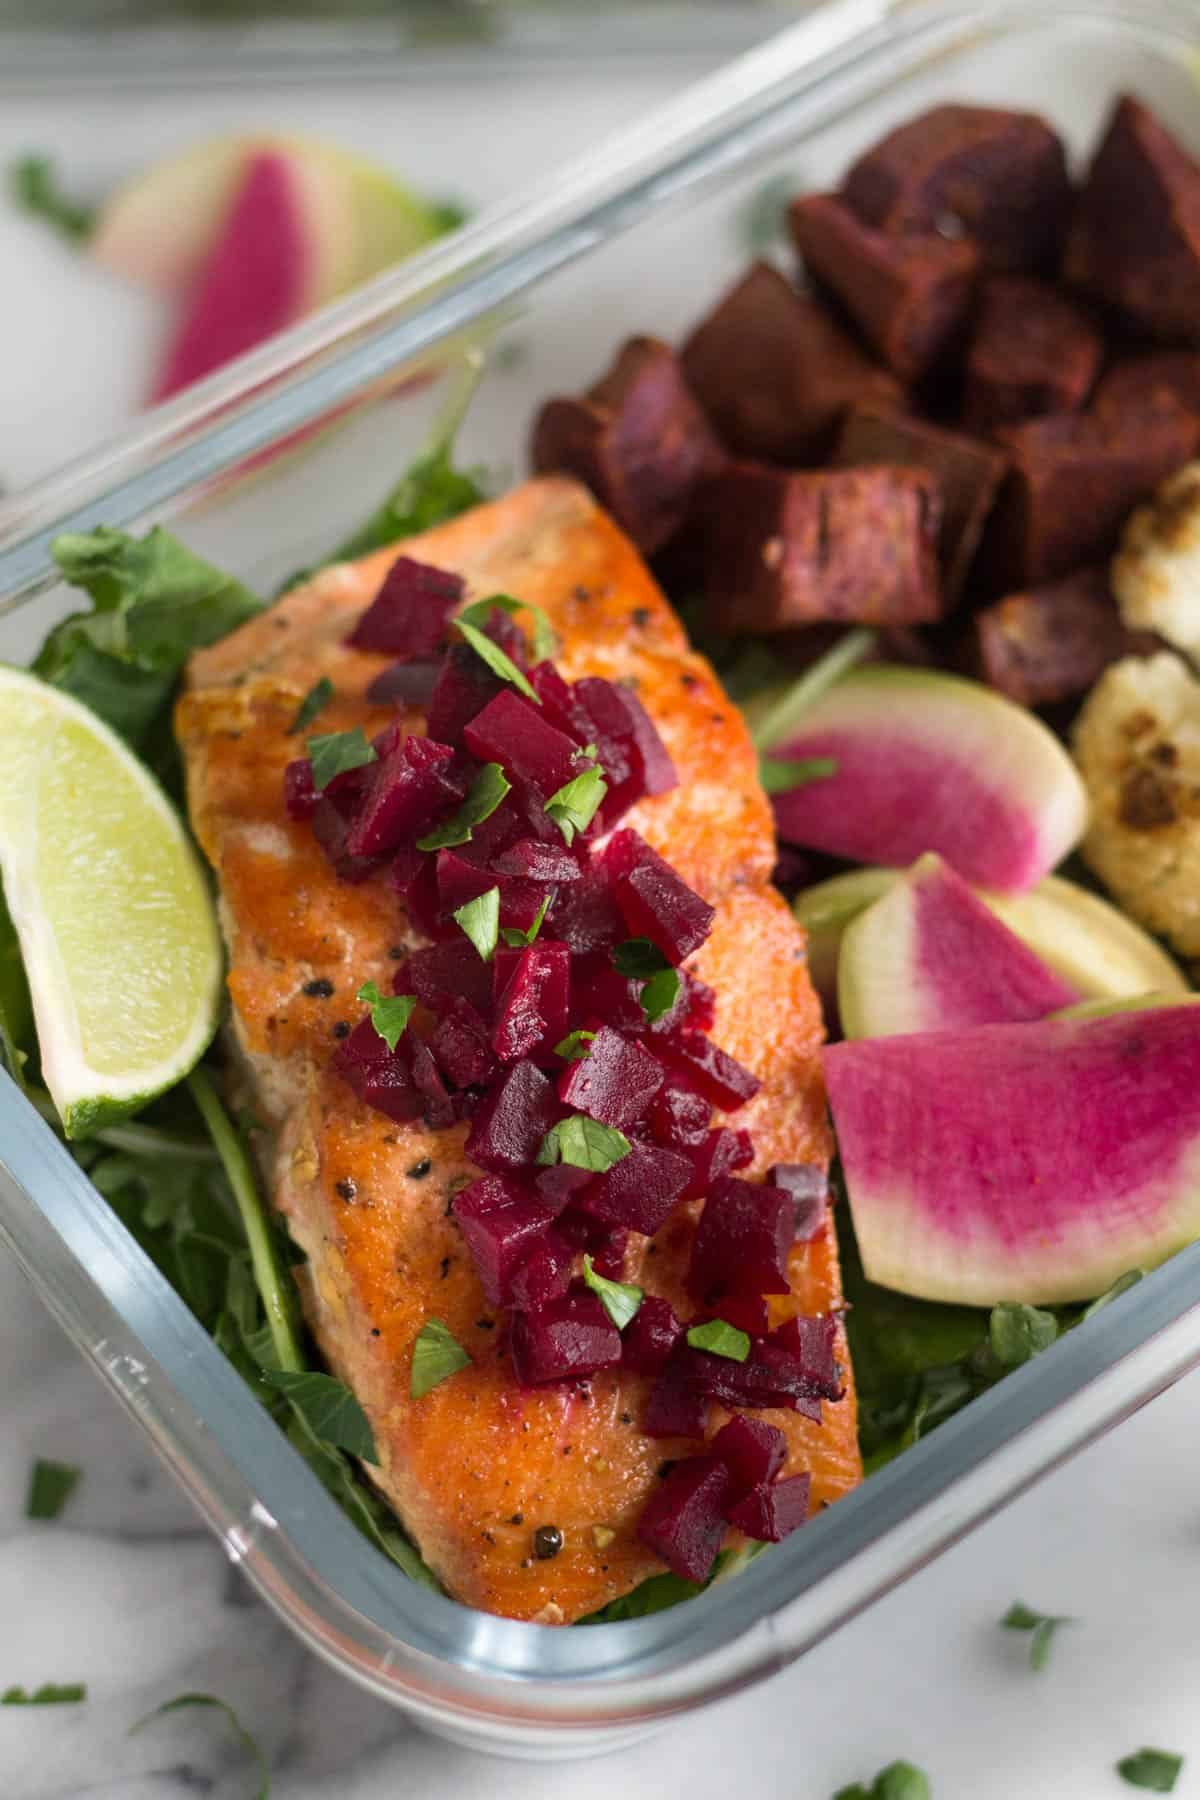 Close up of pan friend salmon topped with chopped beets and other veggies in a glass container